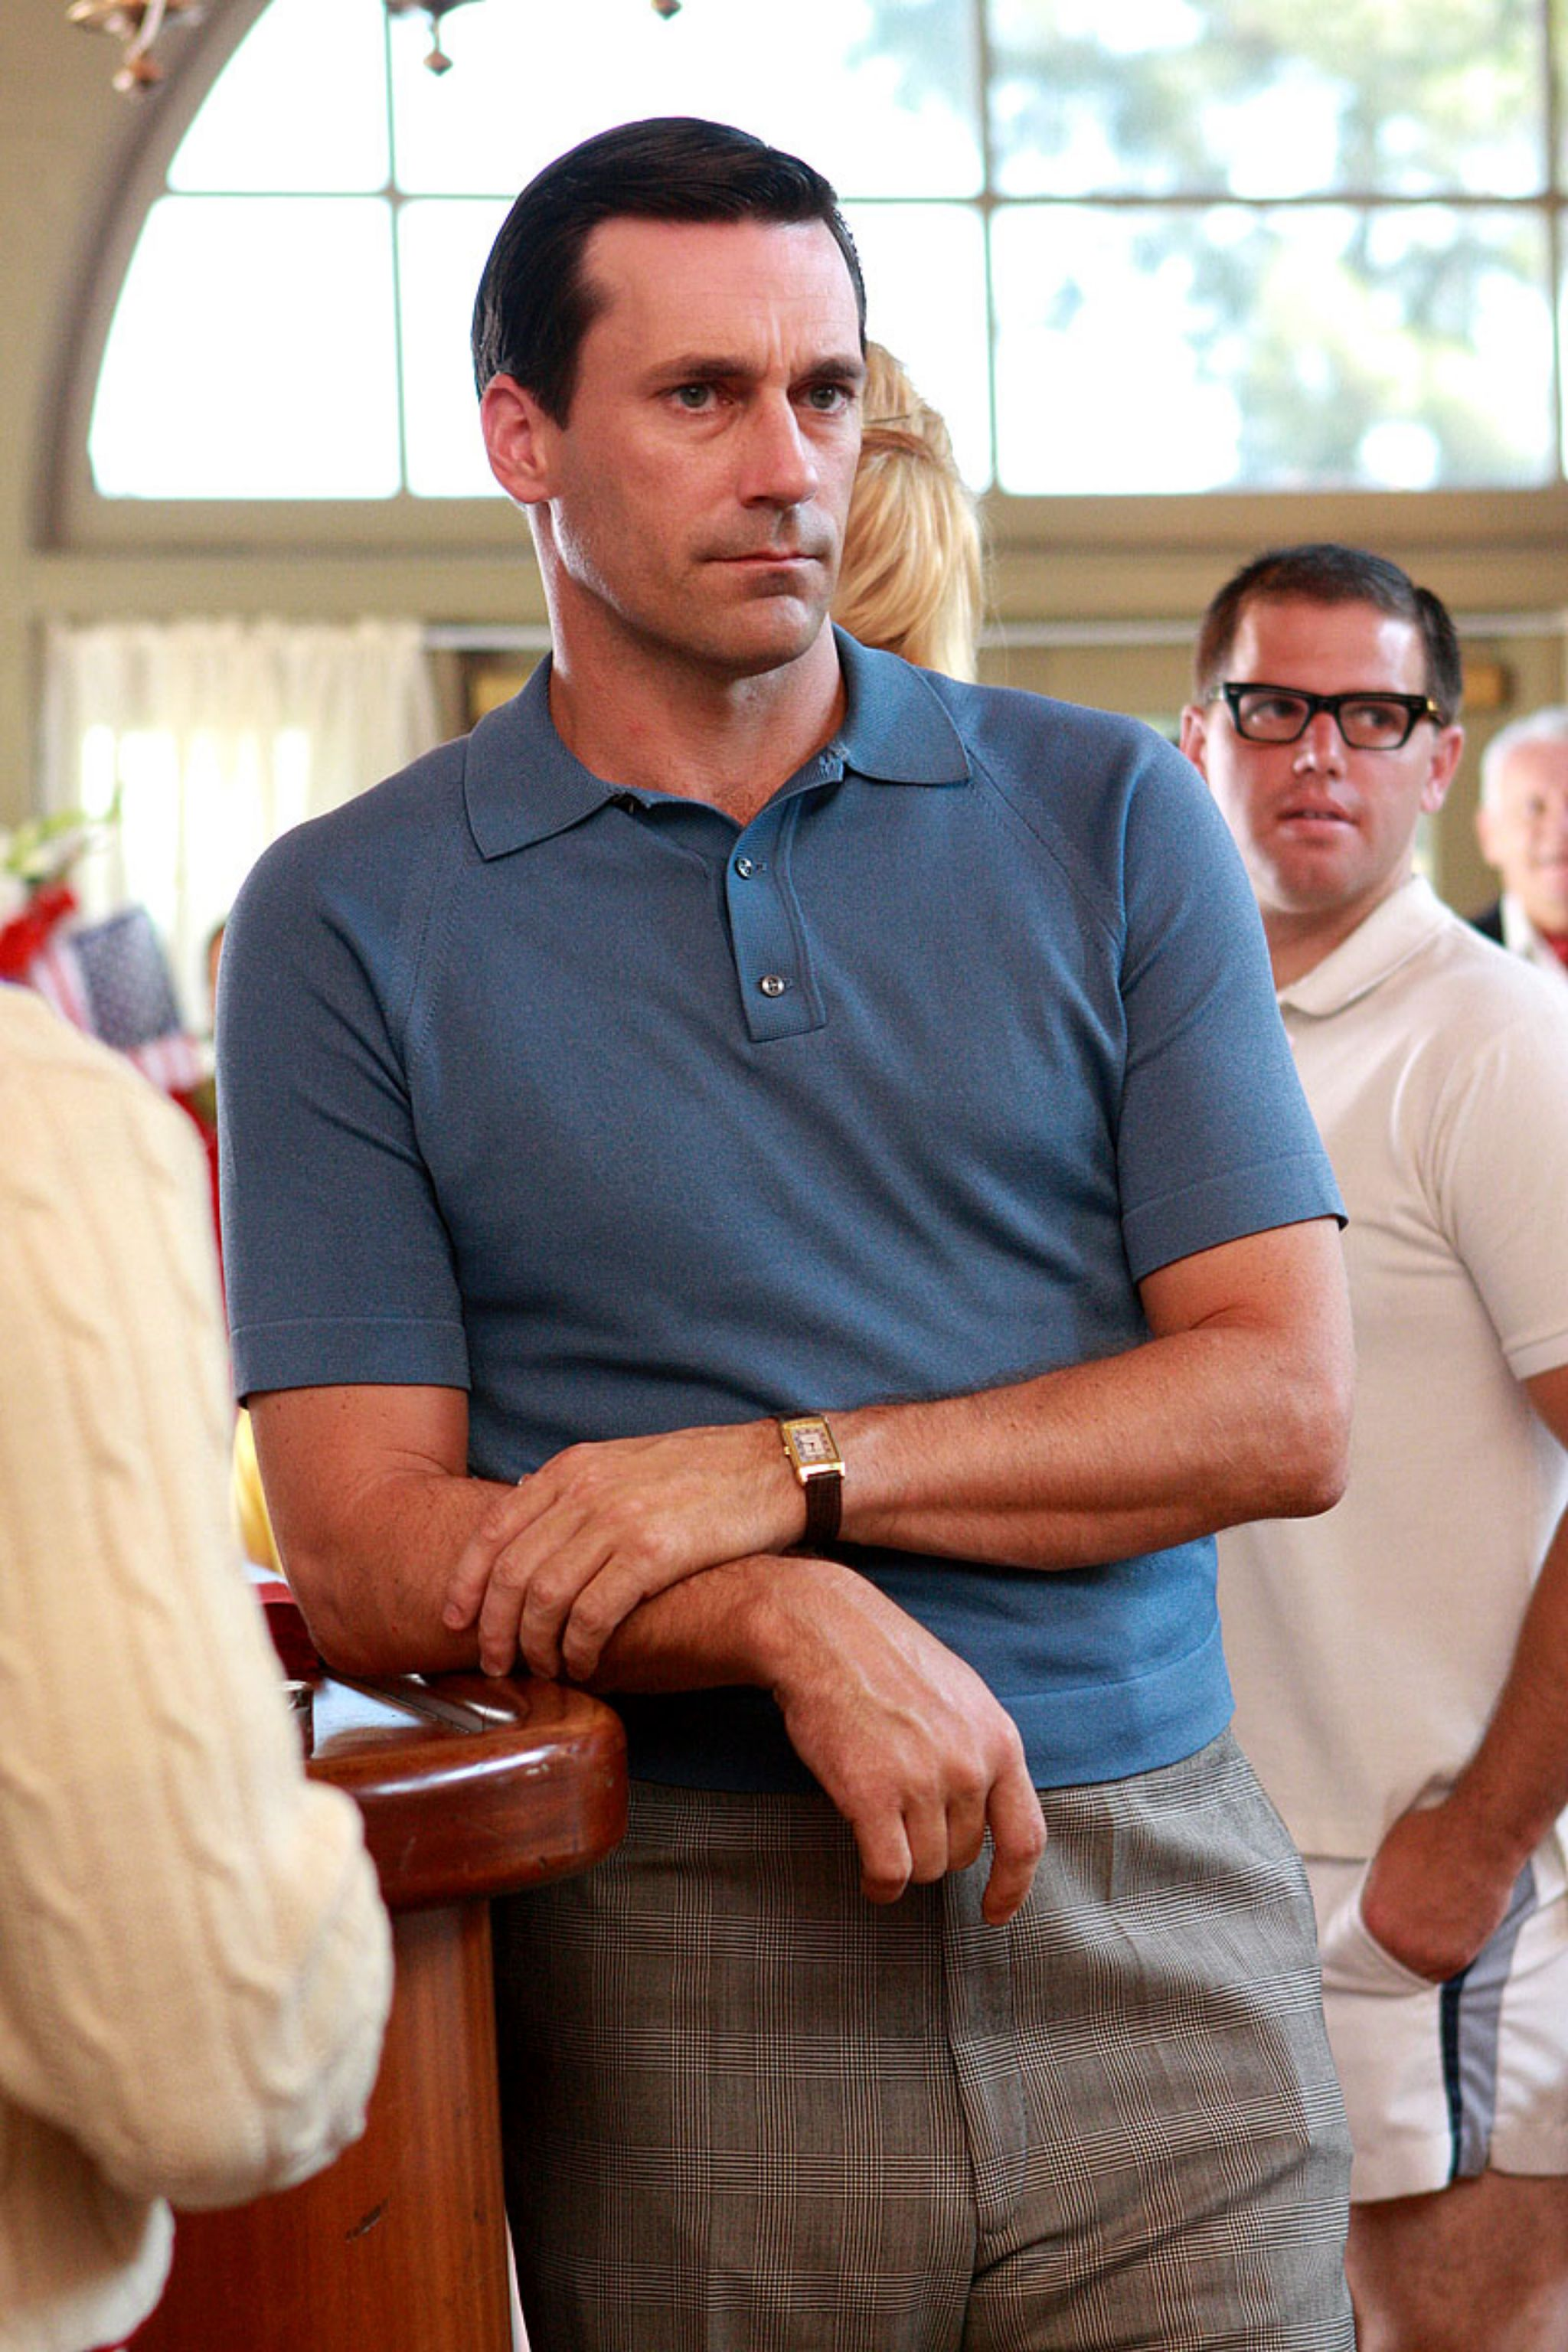 How to wear the polo shirt - classic example by Don Draper